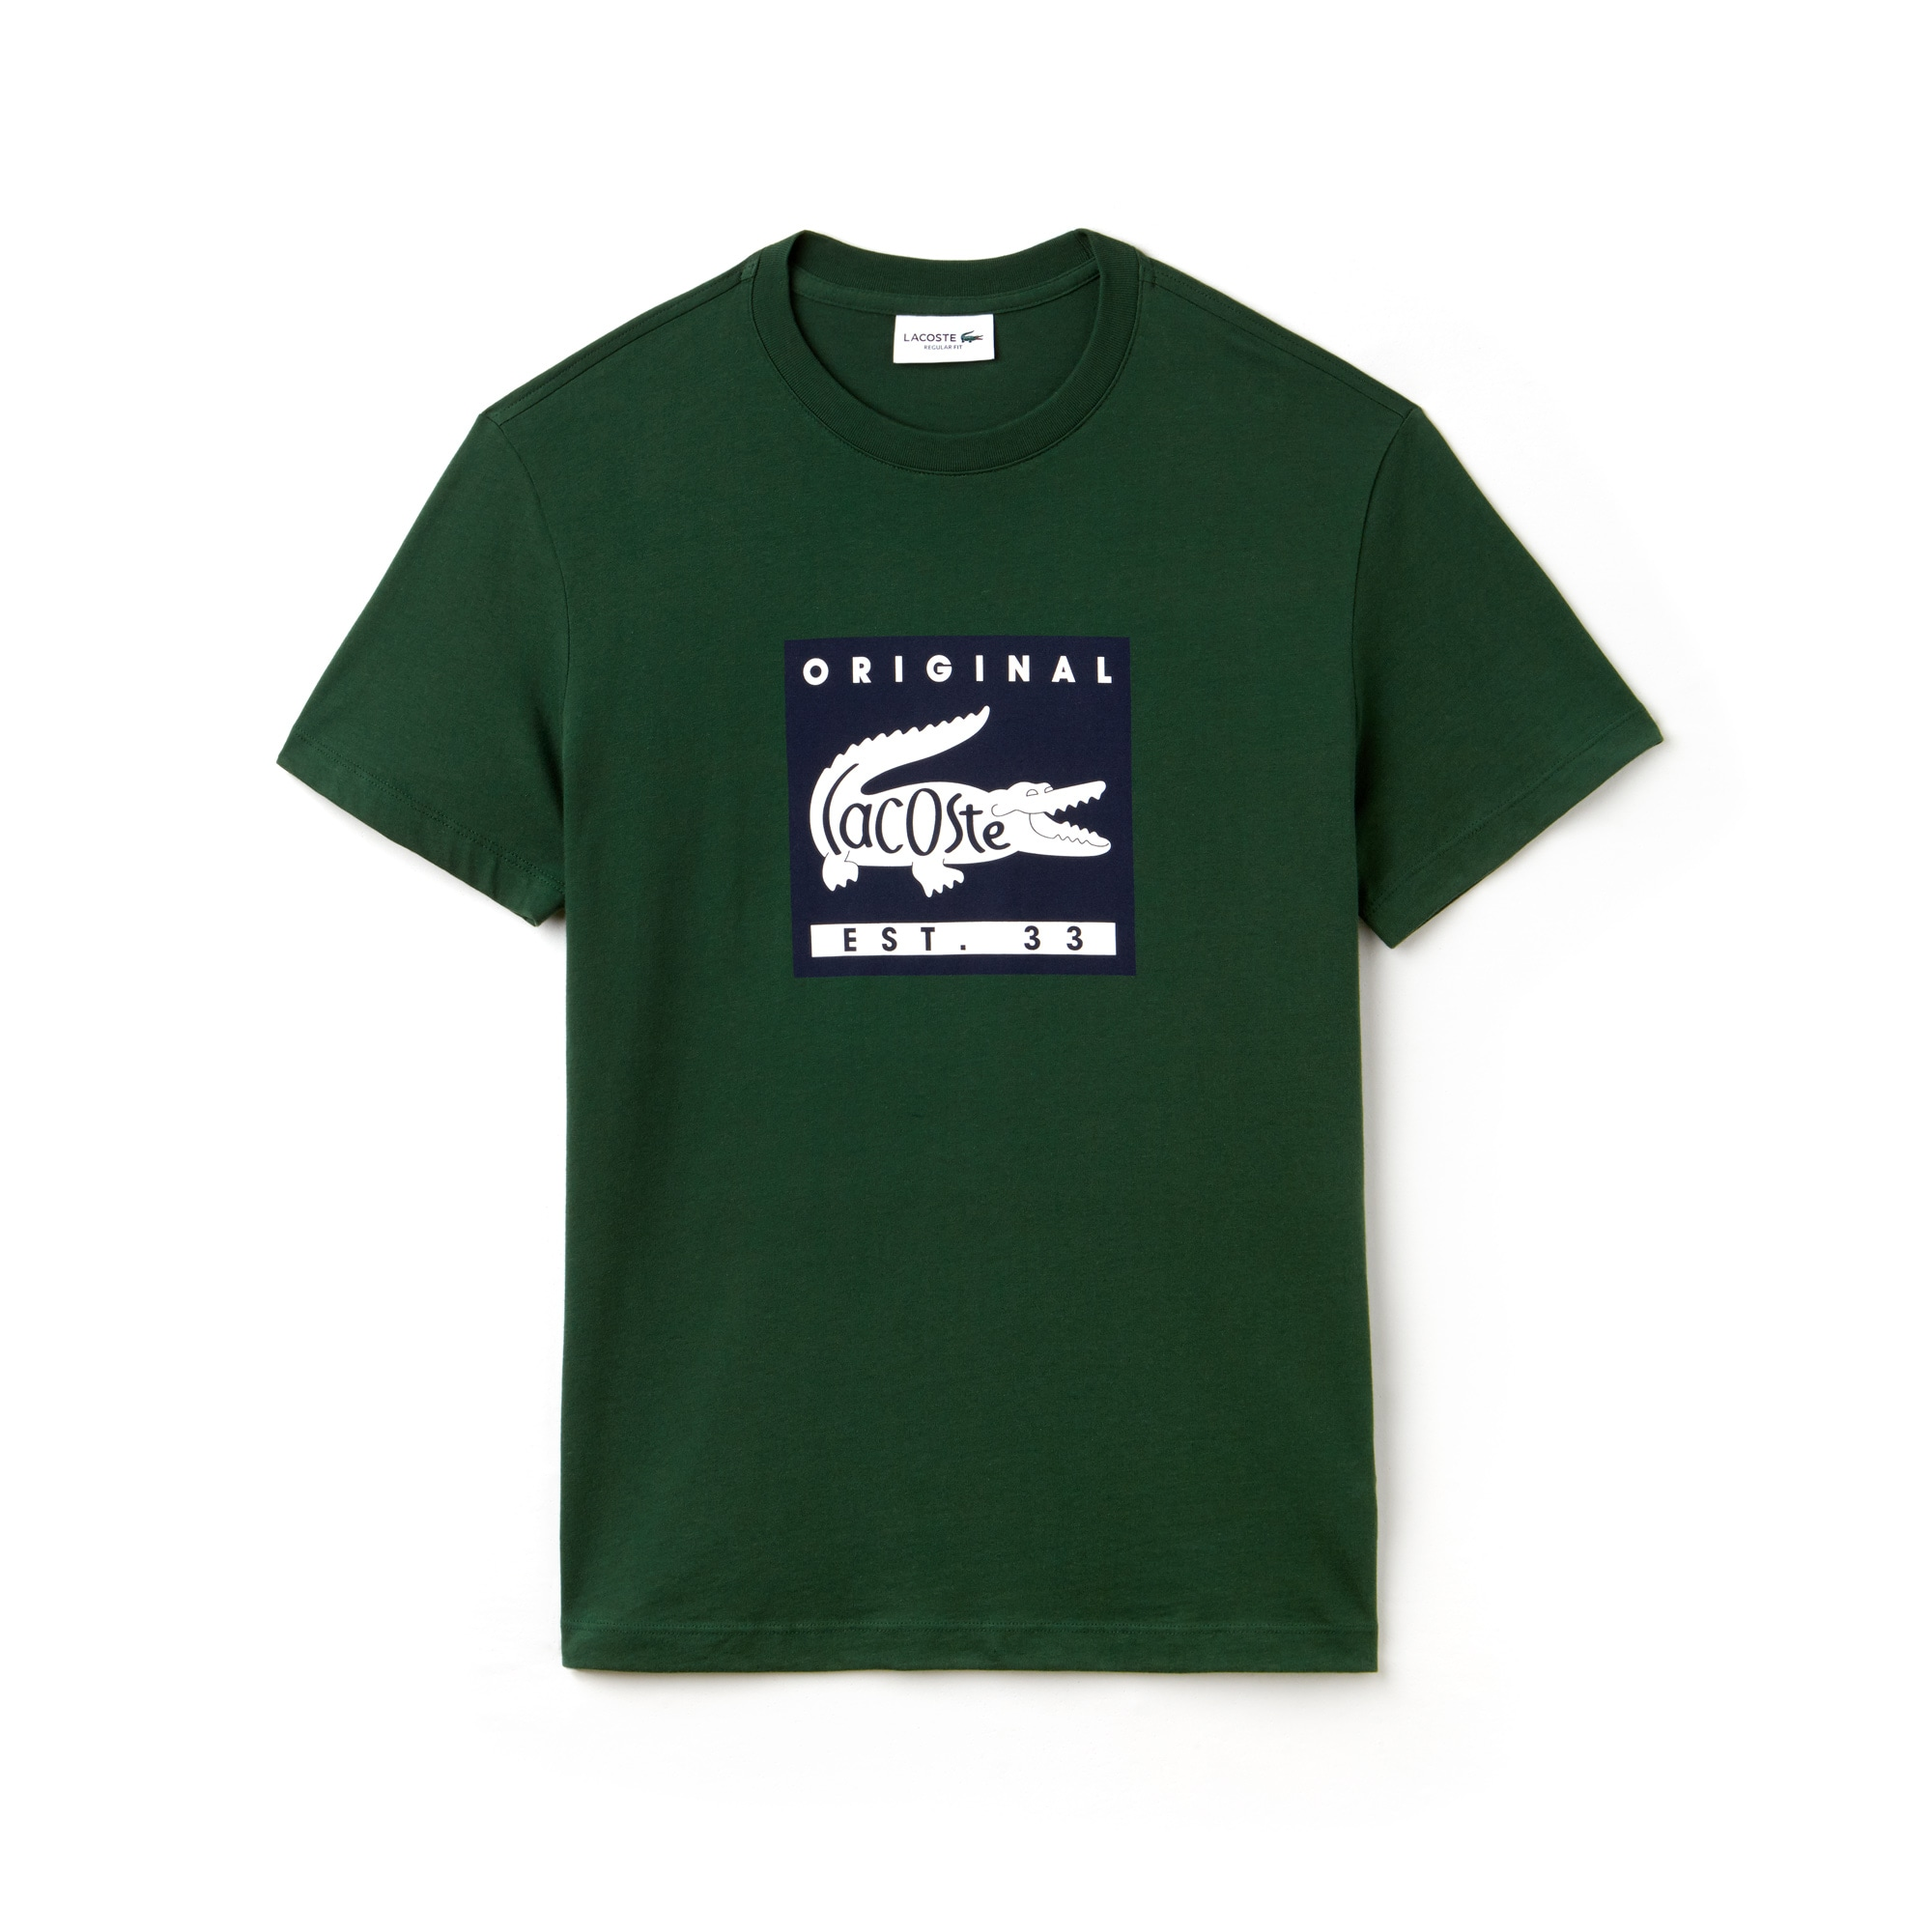 color green navy blue